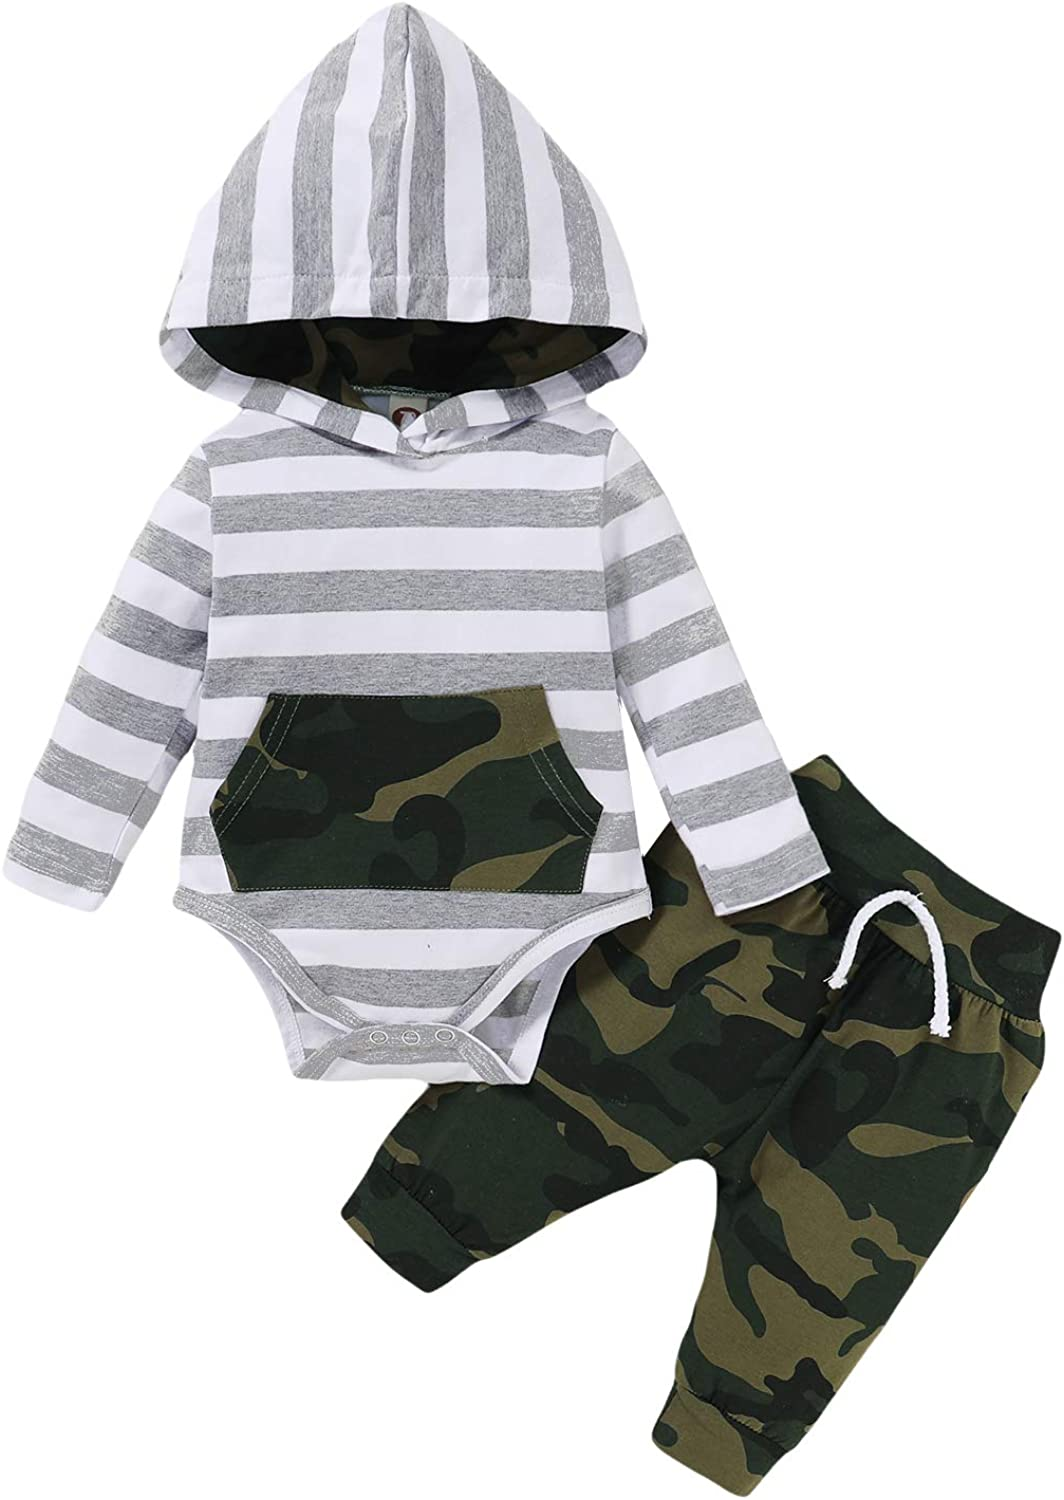 Newborn Baby Boy Clothes Outfit New to The Crew Letter Print Romper Camouflage Pants Hat 3PCS Set